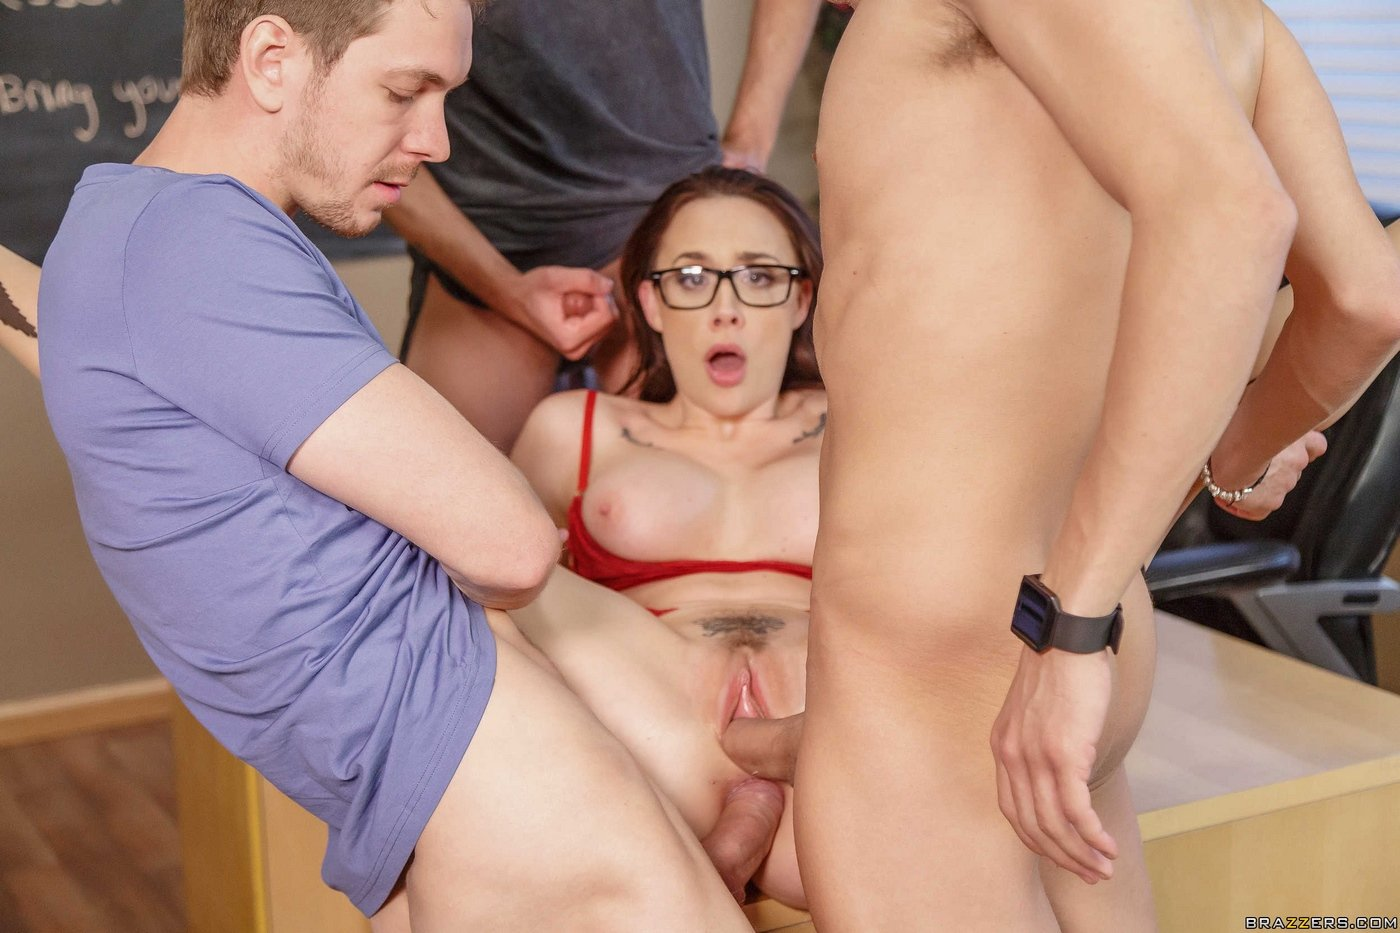 Free Hq Mom Teen College Student Gets Fucked By Older Milf British Big Tits Teacher Porn Photo